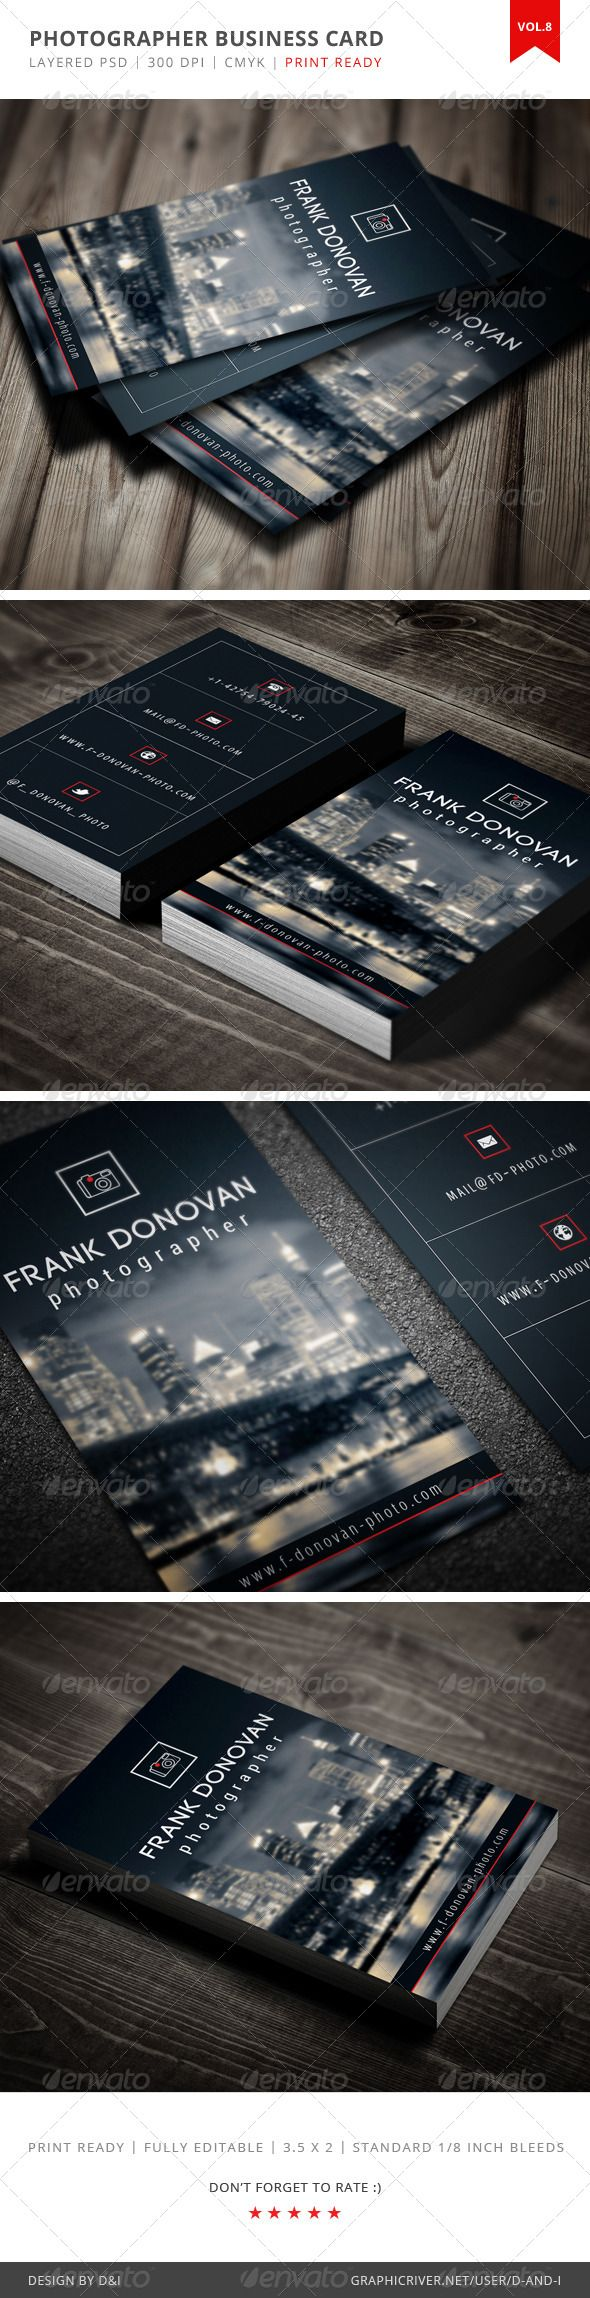 1439 best cool business cards on pinterest images on pinterest photographer business card vol8 magicingreecefo Gallery